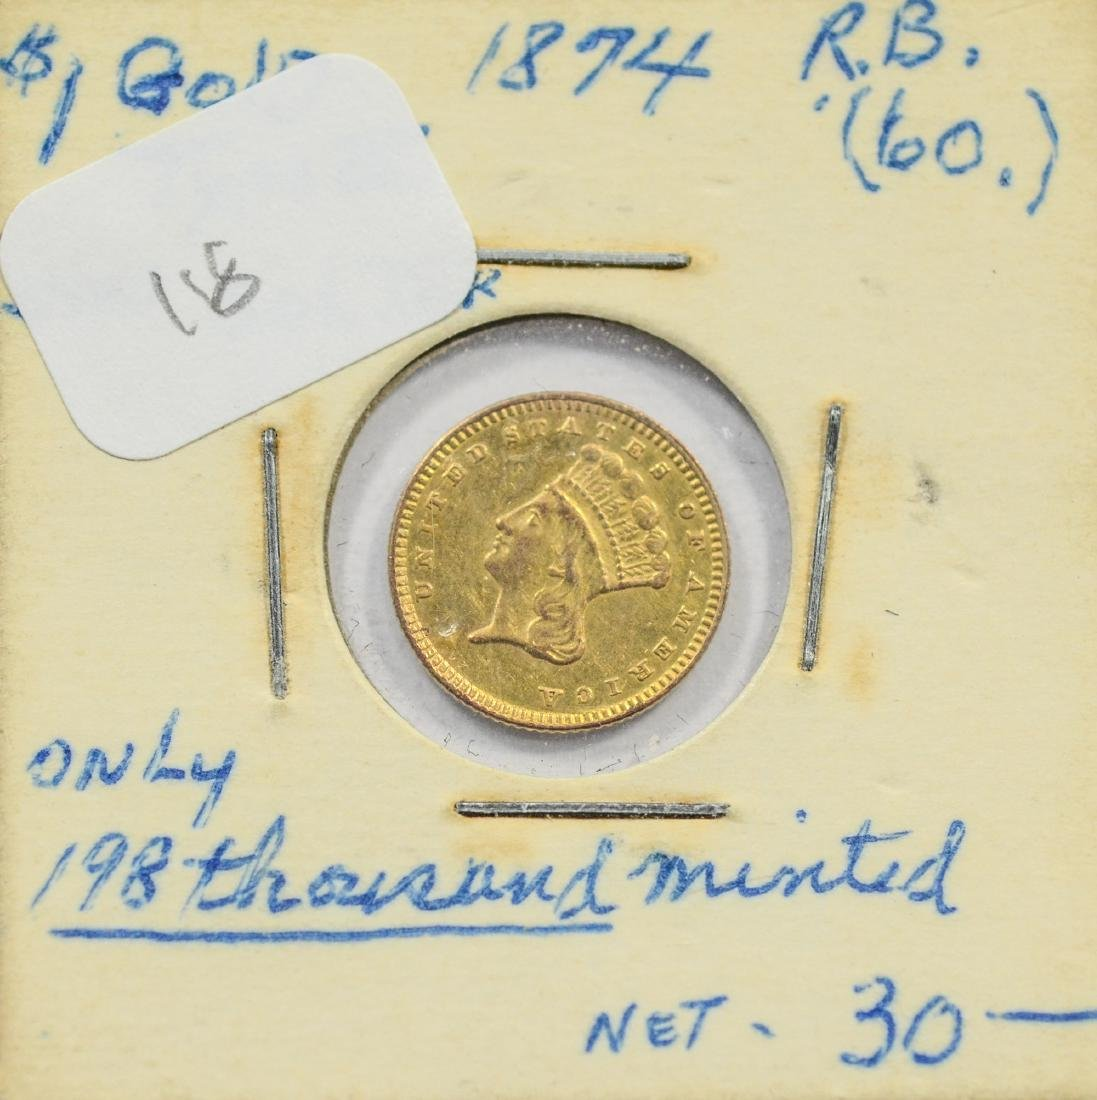 1874 $1 Liberty gold coin, jewelry grade